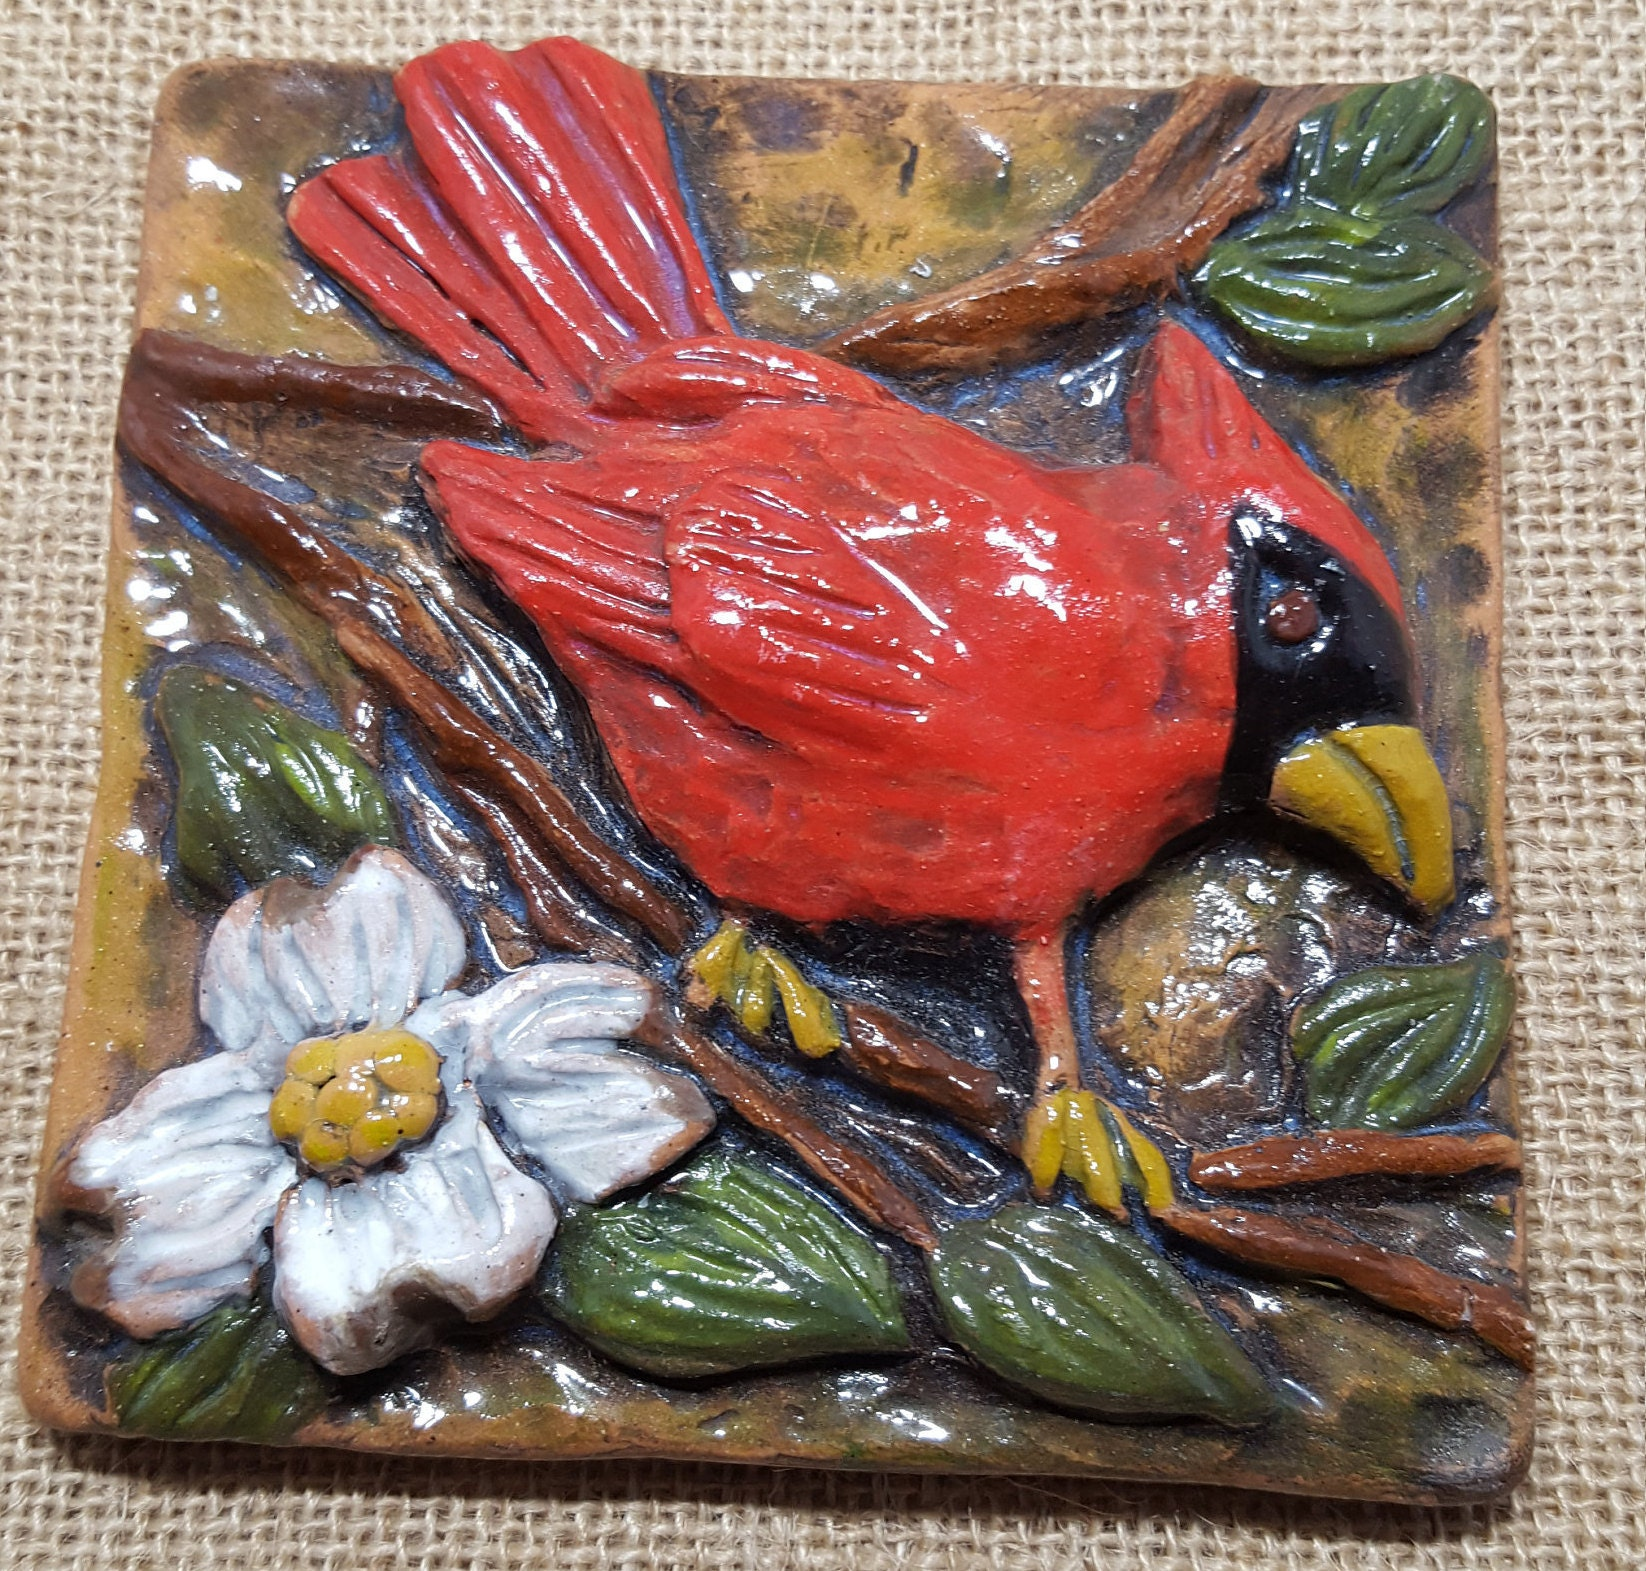 Cardinal ceramic wall tile handmade 4 x 4 ceramic tile art cardinal ceramic wall tile handmade 4 x 4 ceramic tile art dailygadgetfo Choice Image